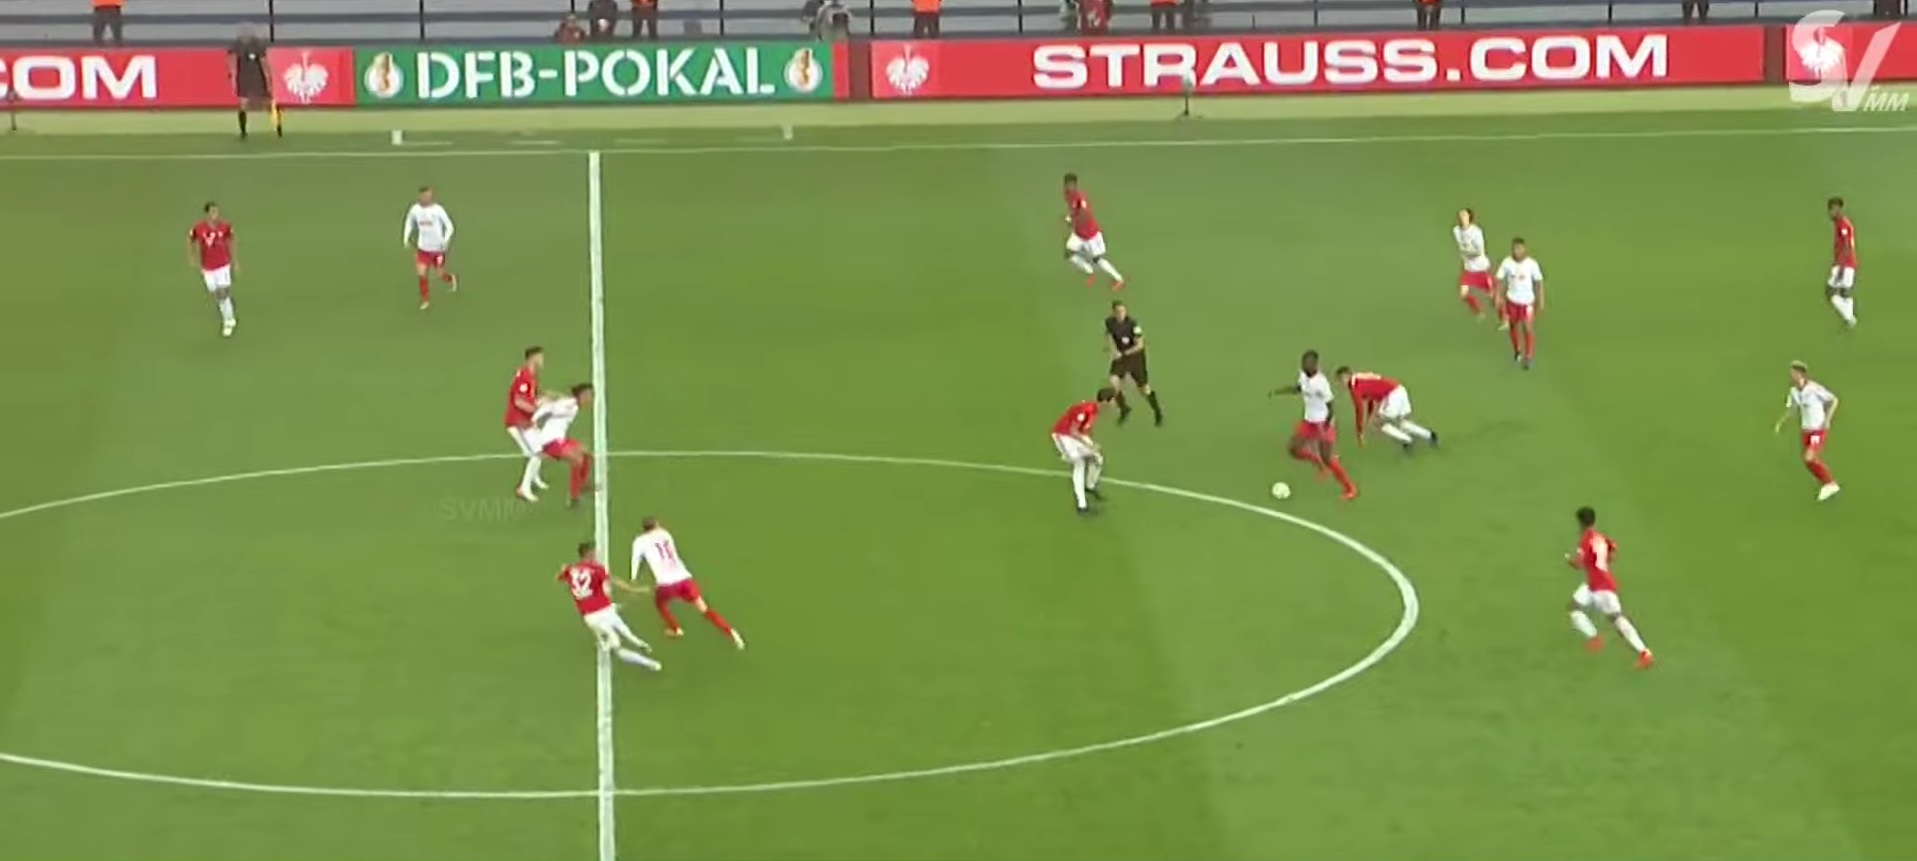 (Video) Konate's best bits as LFC close in on €40m Leipzig star – big tackles & passes